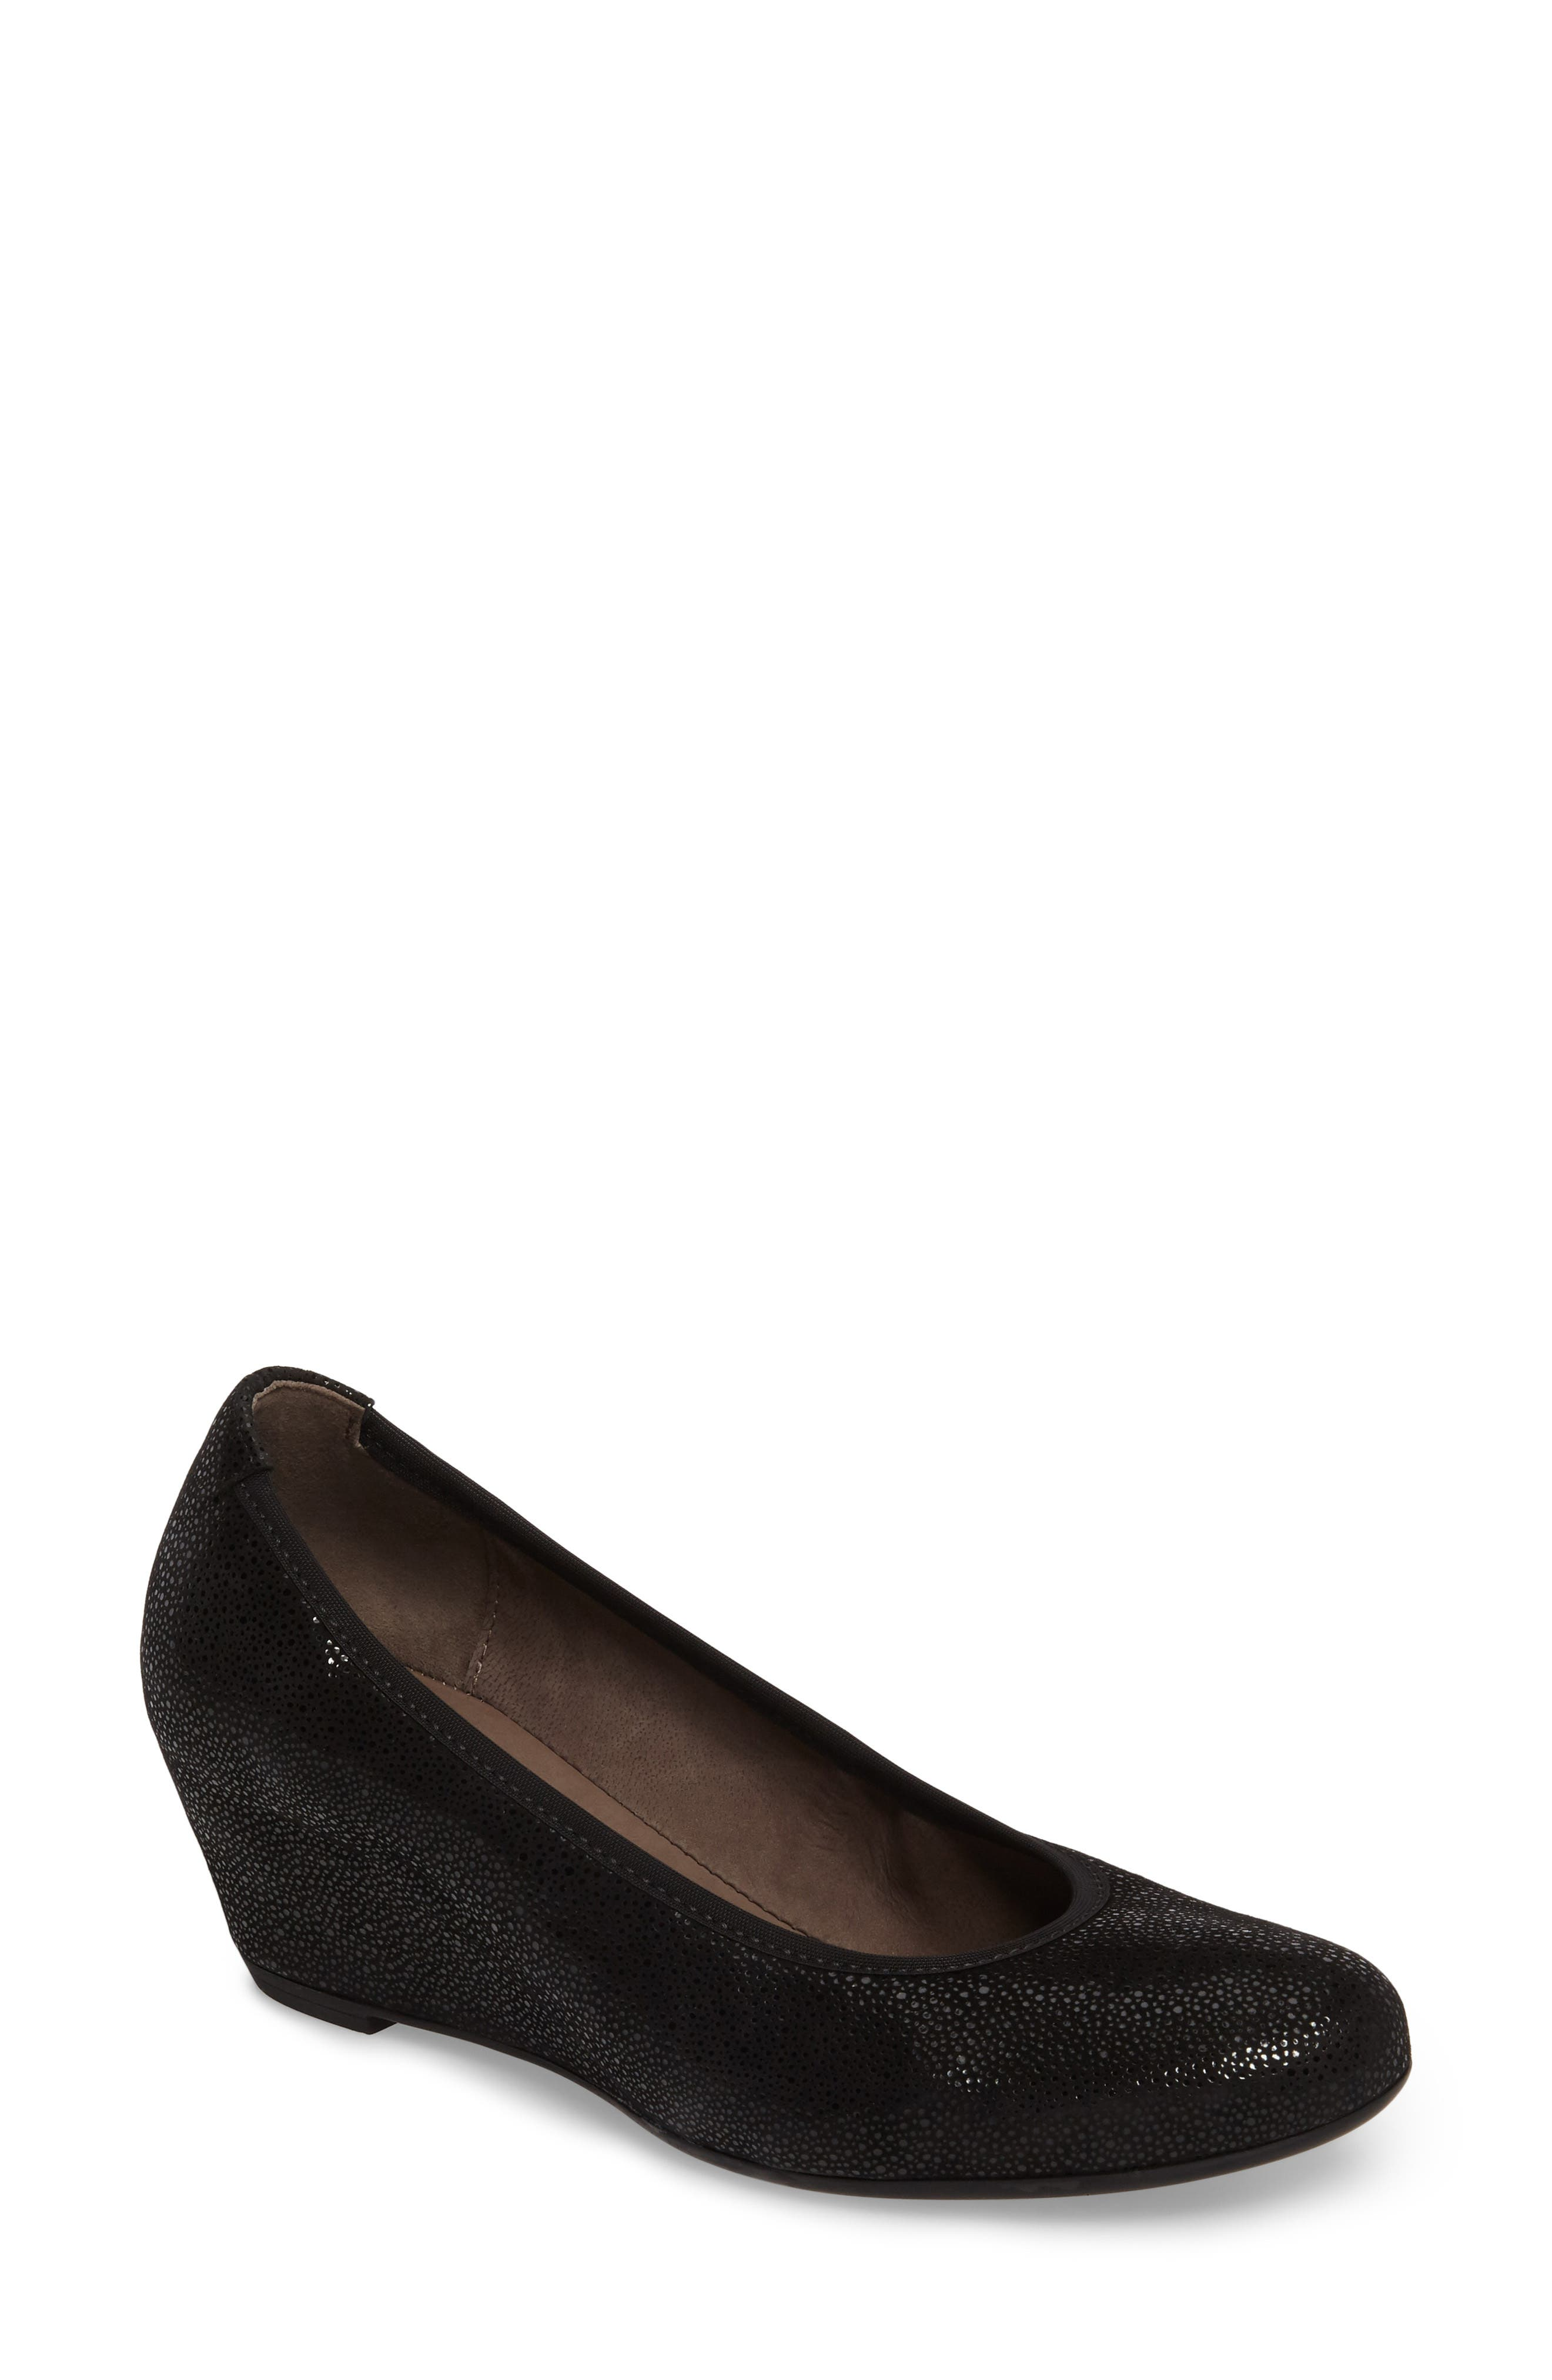 Wedge Pump,                         Main,                         color, BLACK GLITTER LEATHER 2